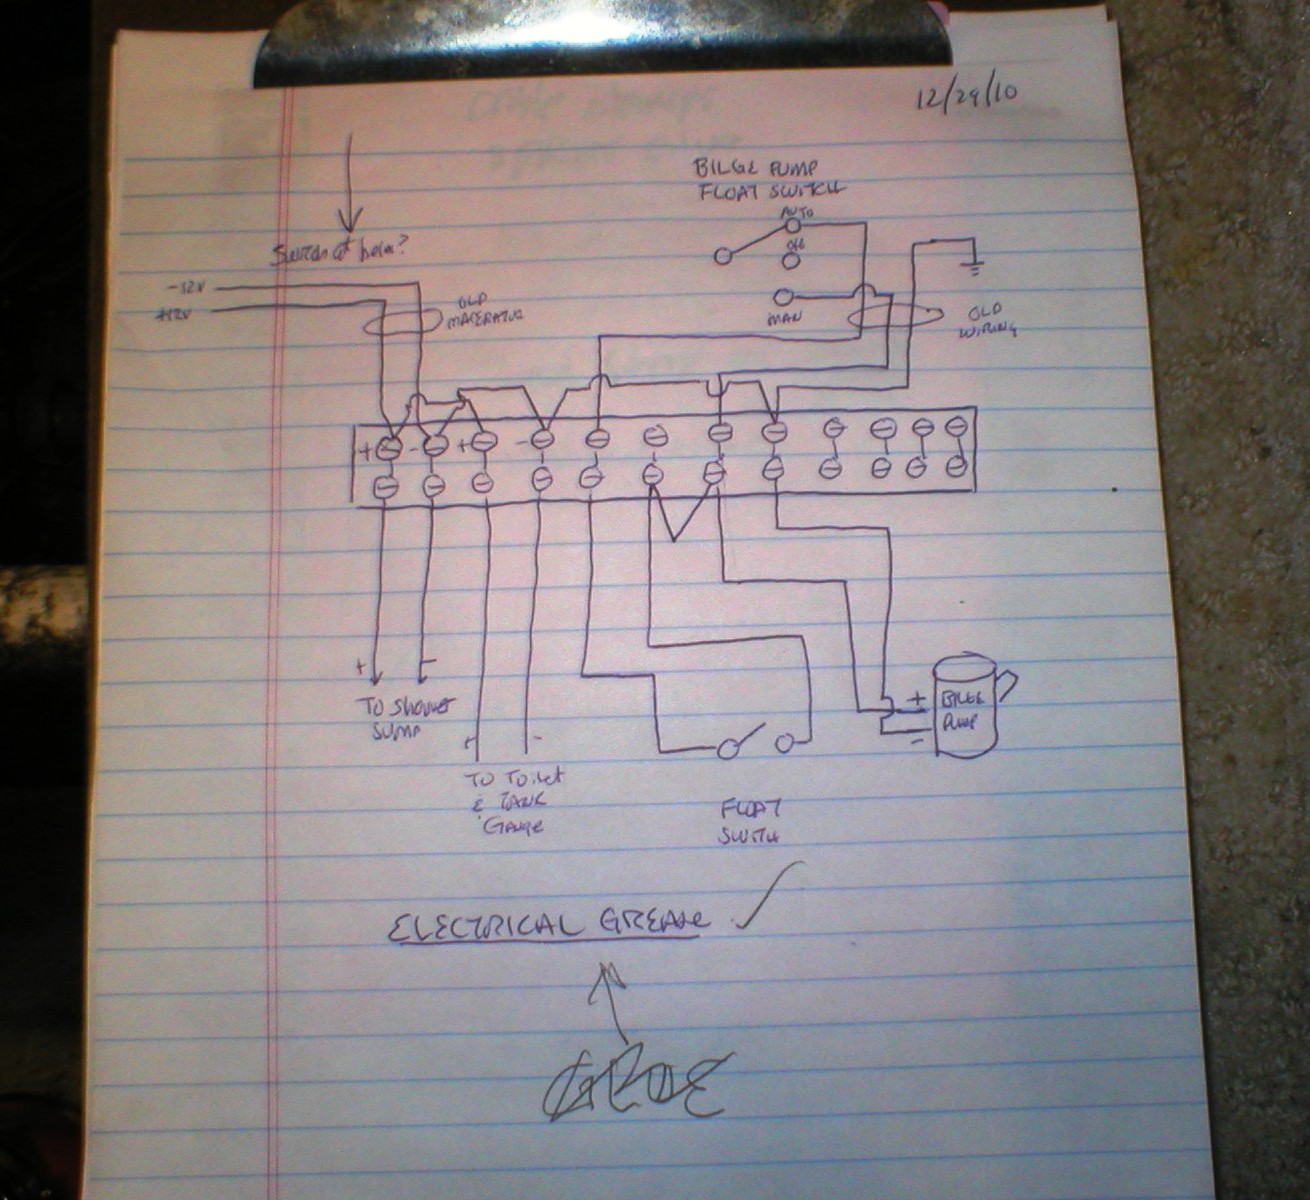 Rule Float Switch Wiring Diagram Just Another Blog Schematic Schema Diagrams Rh 39 Justanotherbeautyblog De Circuit Brute Trolling Motor